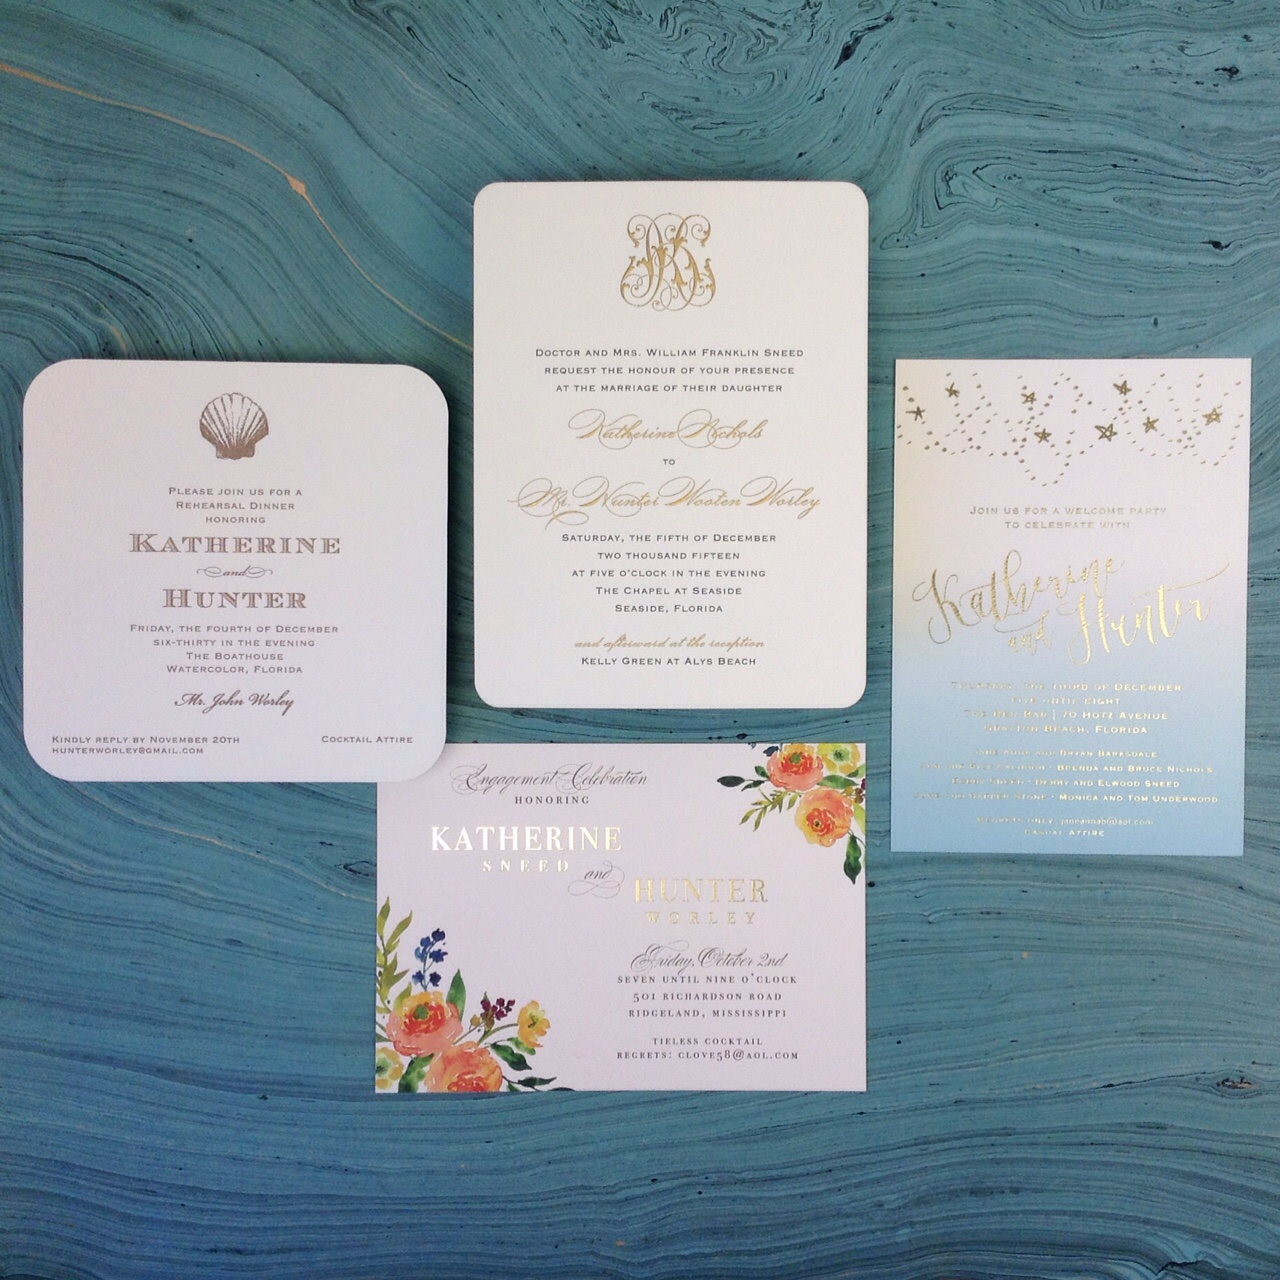 Katherine Sneed and Hunter Worley Wedding Invitations | Fresh Ink ...